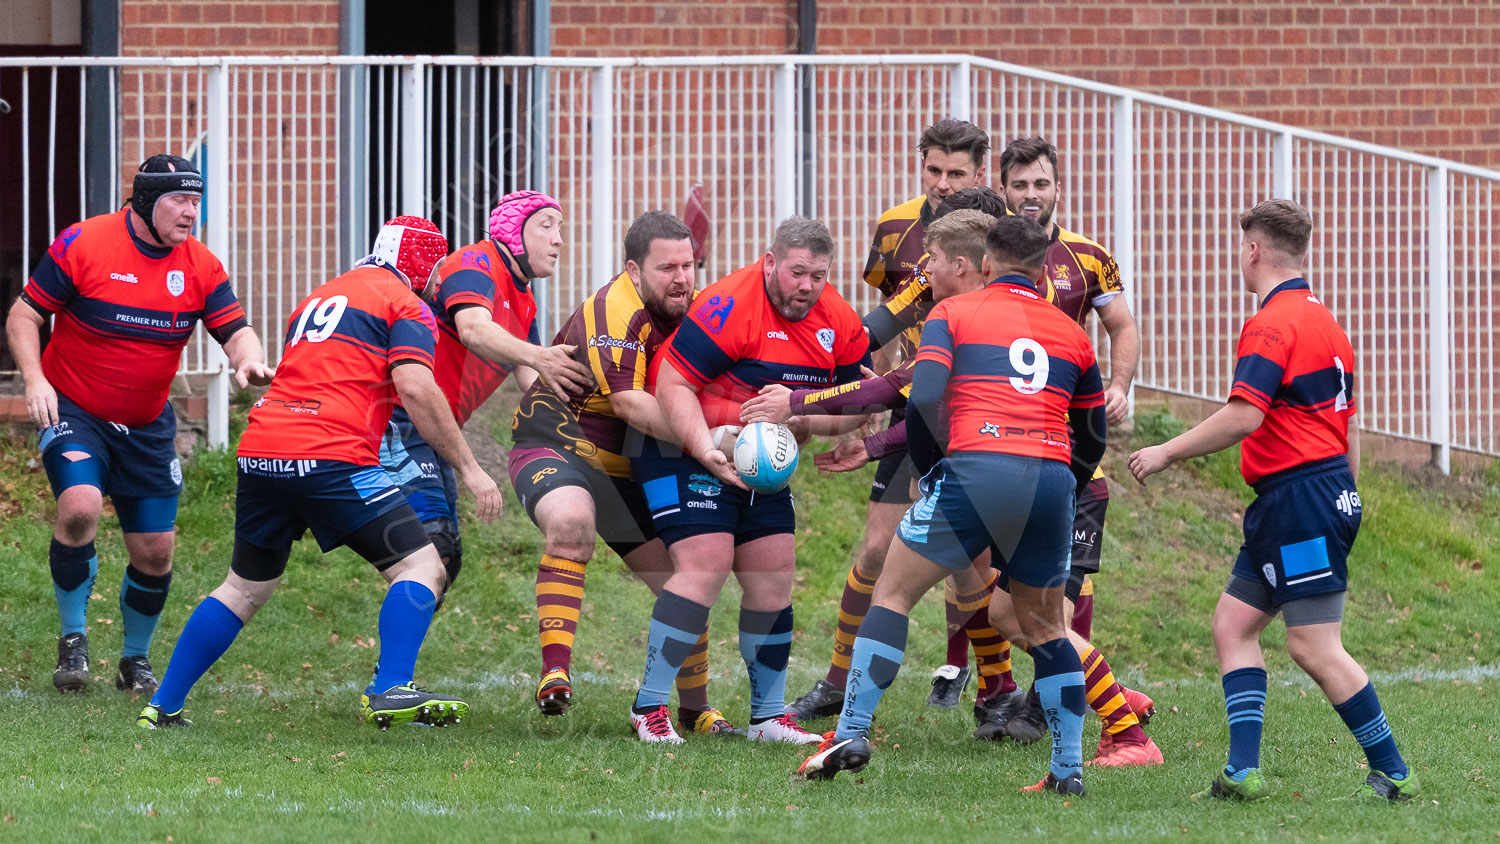 20181027 Amp Extras vs St Neots 2nd XV #2296